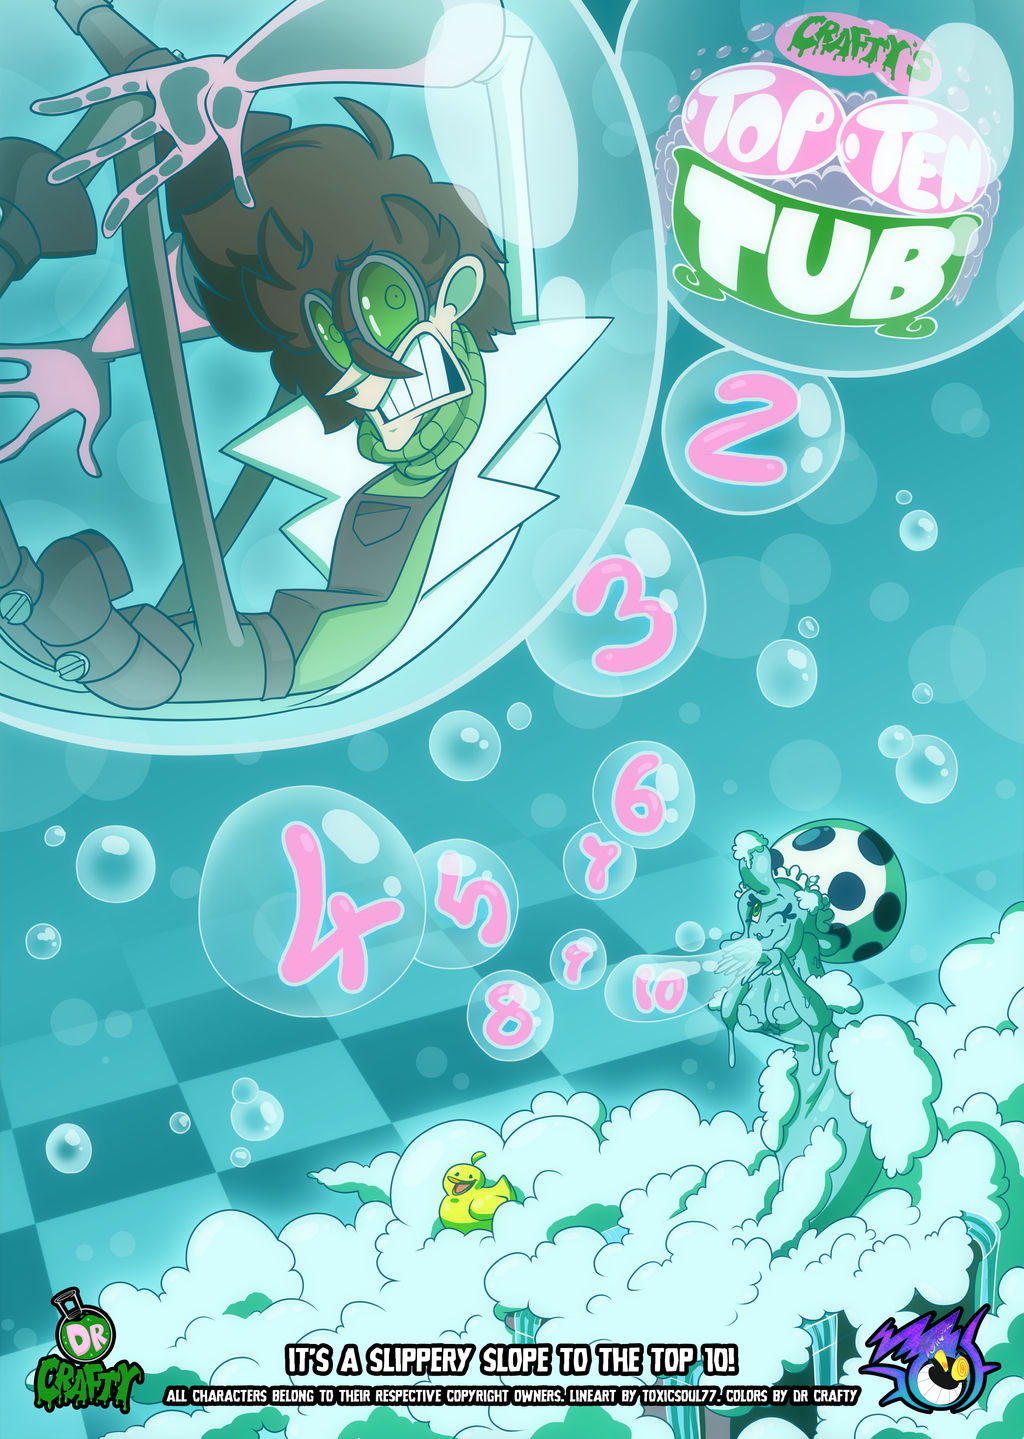 Crafty Concoction: Top 10 Tub Poster by DrCrafty